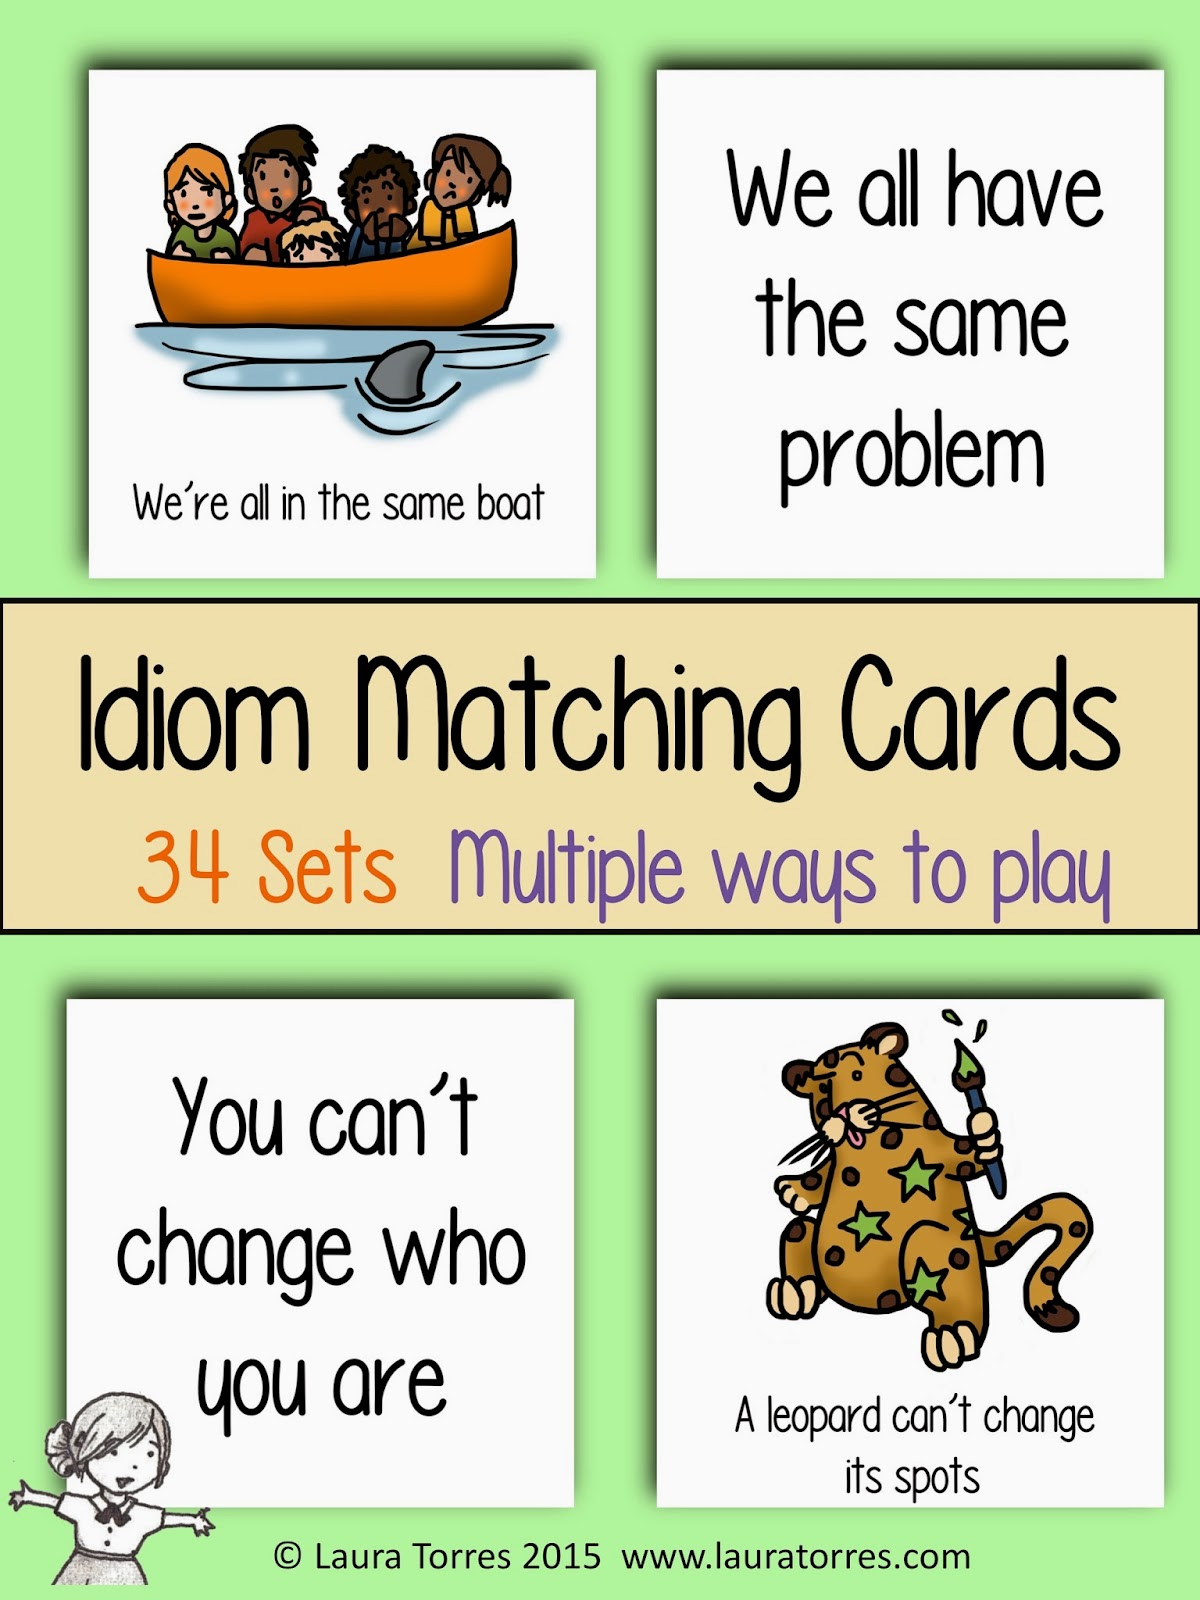 http://www.teacherspayteachers.com/Product/Idiom-Matching-Cards-1630536